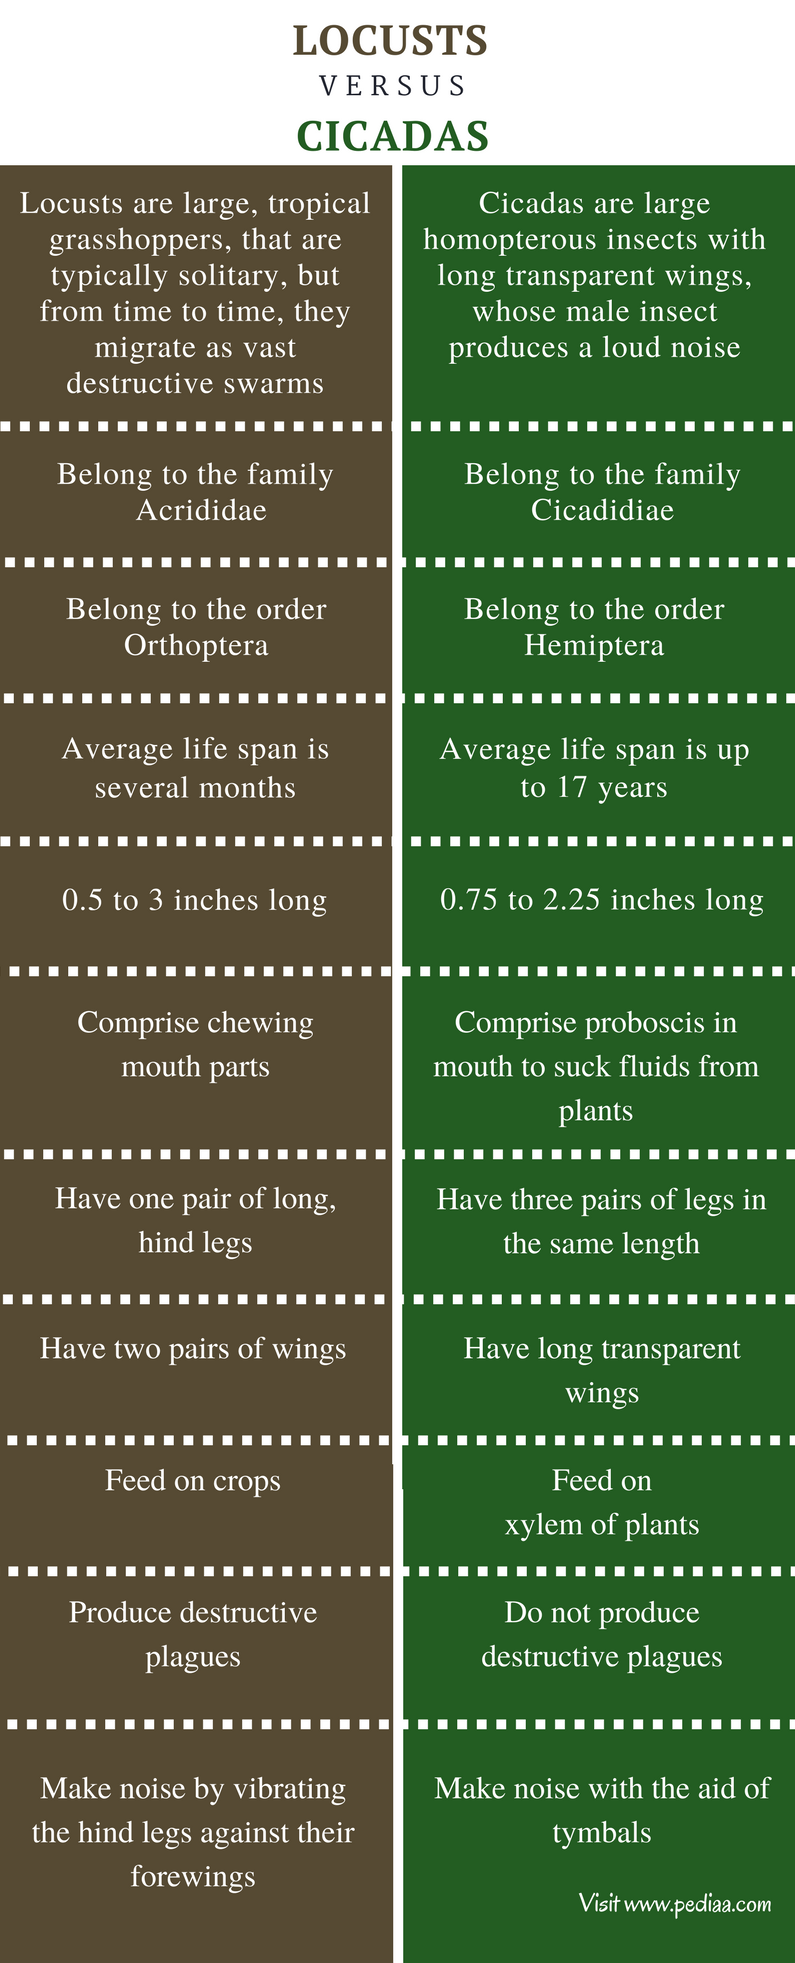 Difference Between Locusts and Cicadas - Comparison Summary